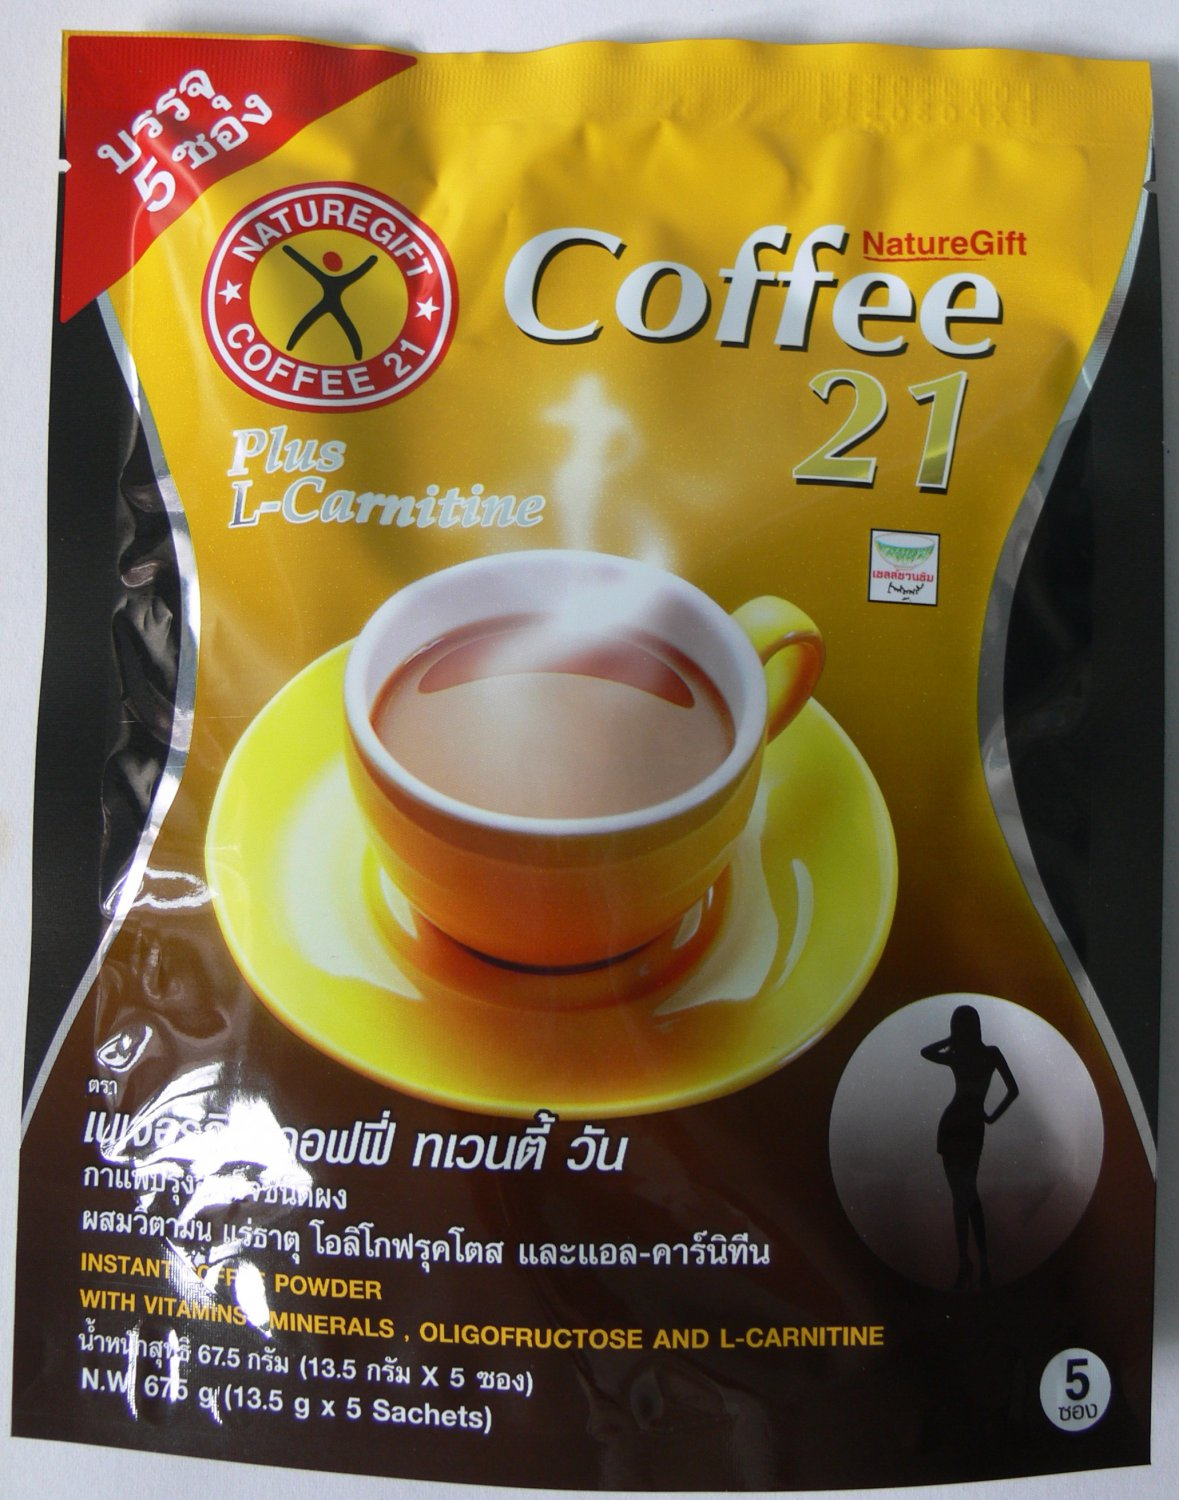 Nature Gift Coffee Weight Loss Control Slimming Diet Low Fat No Sugar FDA NEW 10